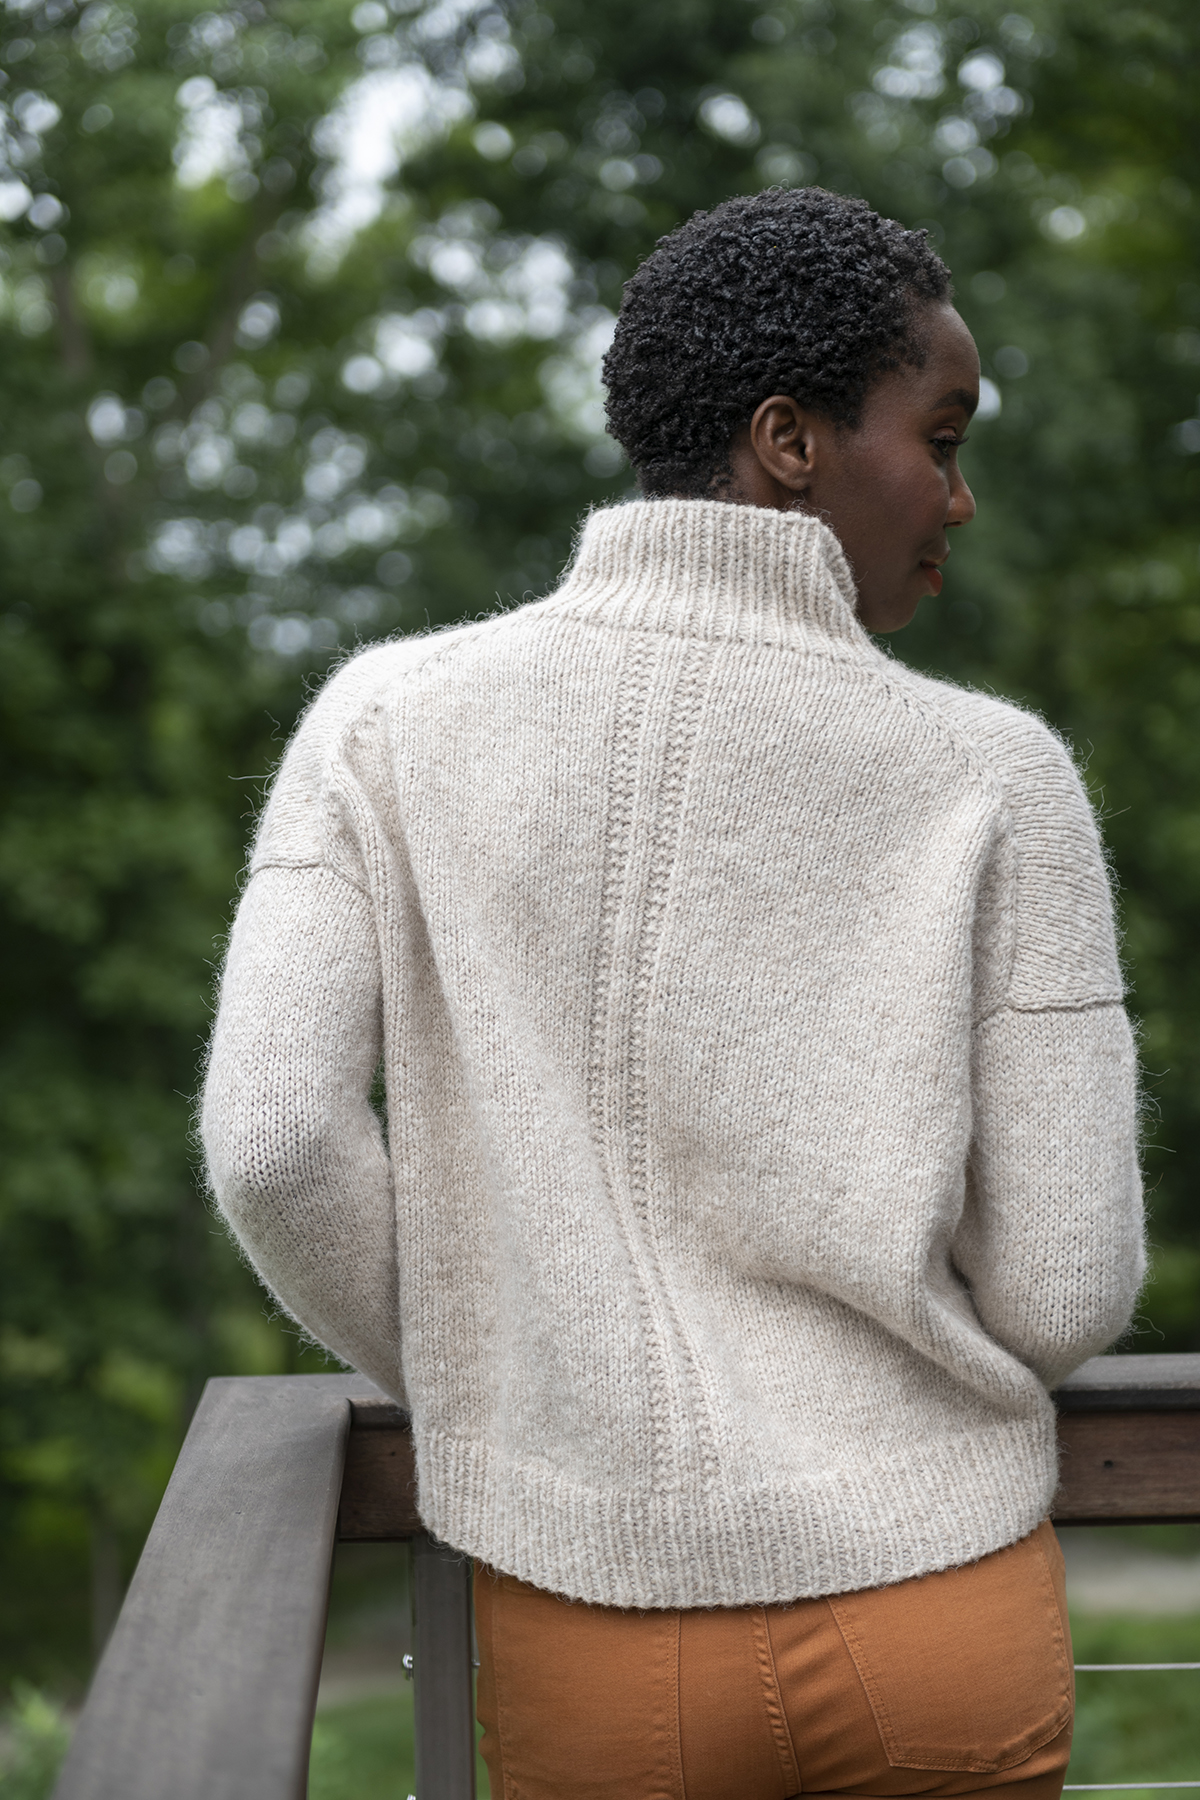 Colvin - Knitting pattern by Julie Hoover